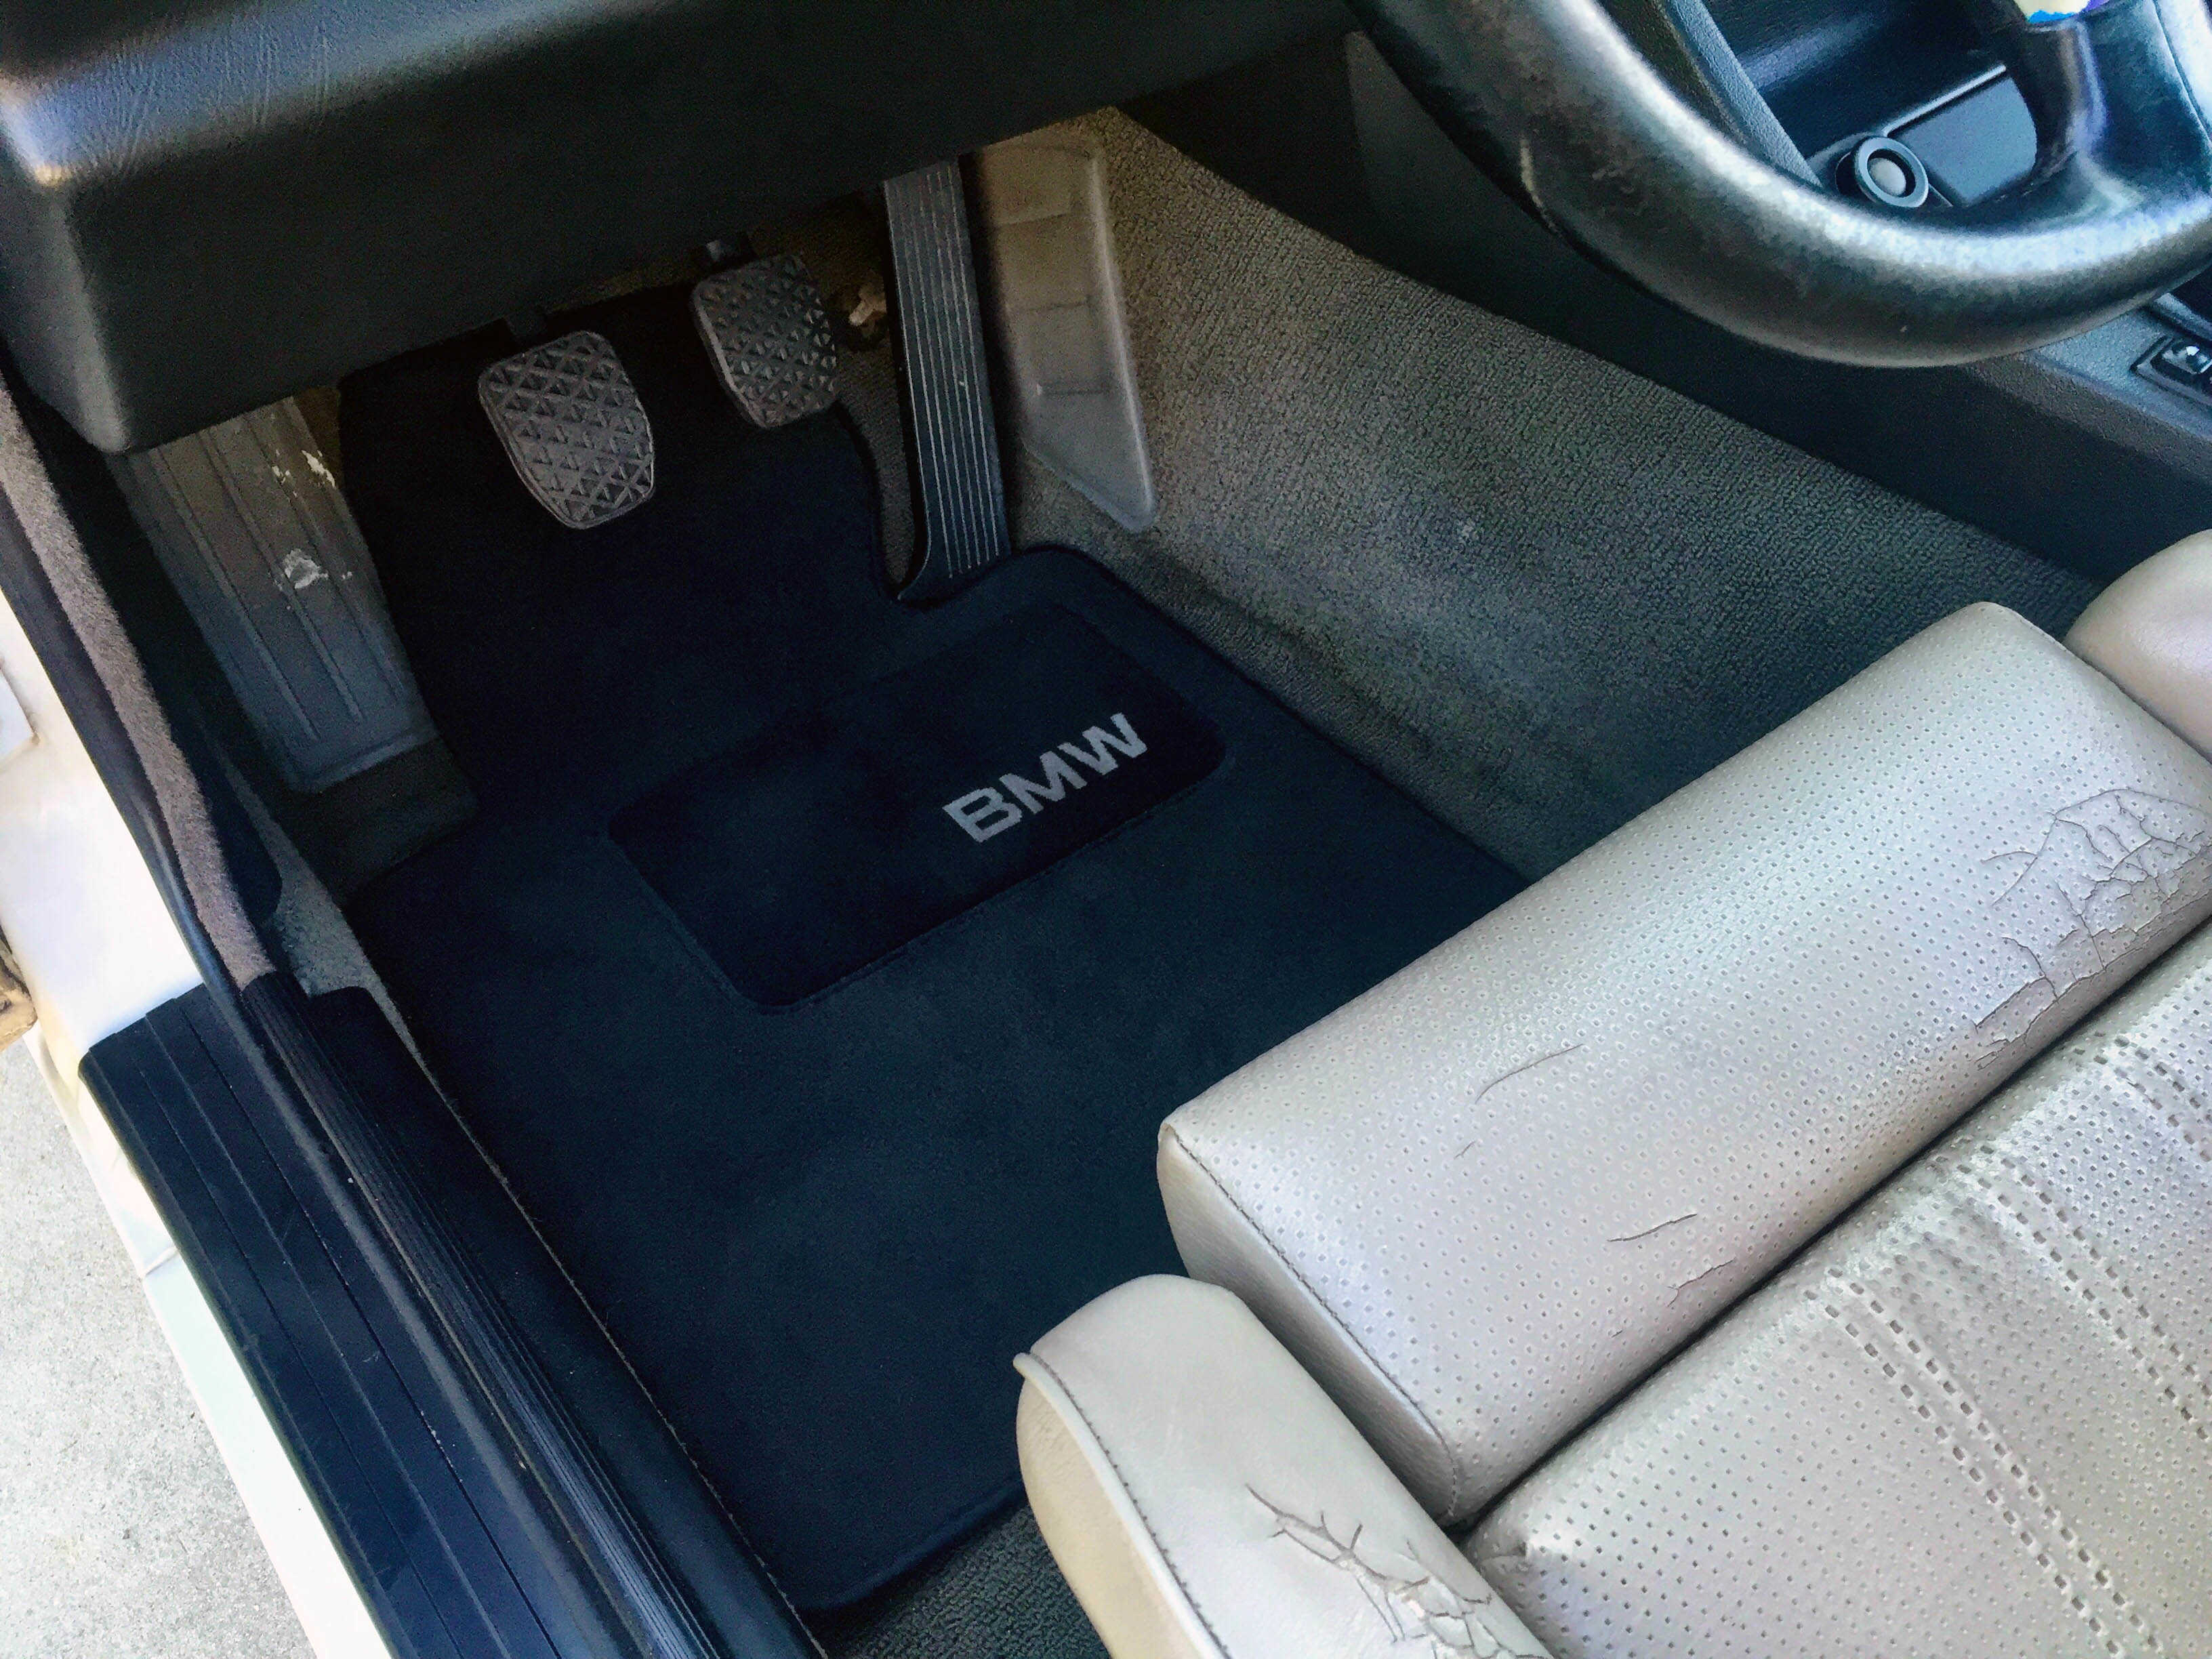 hyundai car mats list full direct mat covers review seat product floor liner id load rubber rear